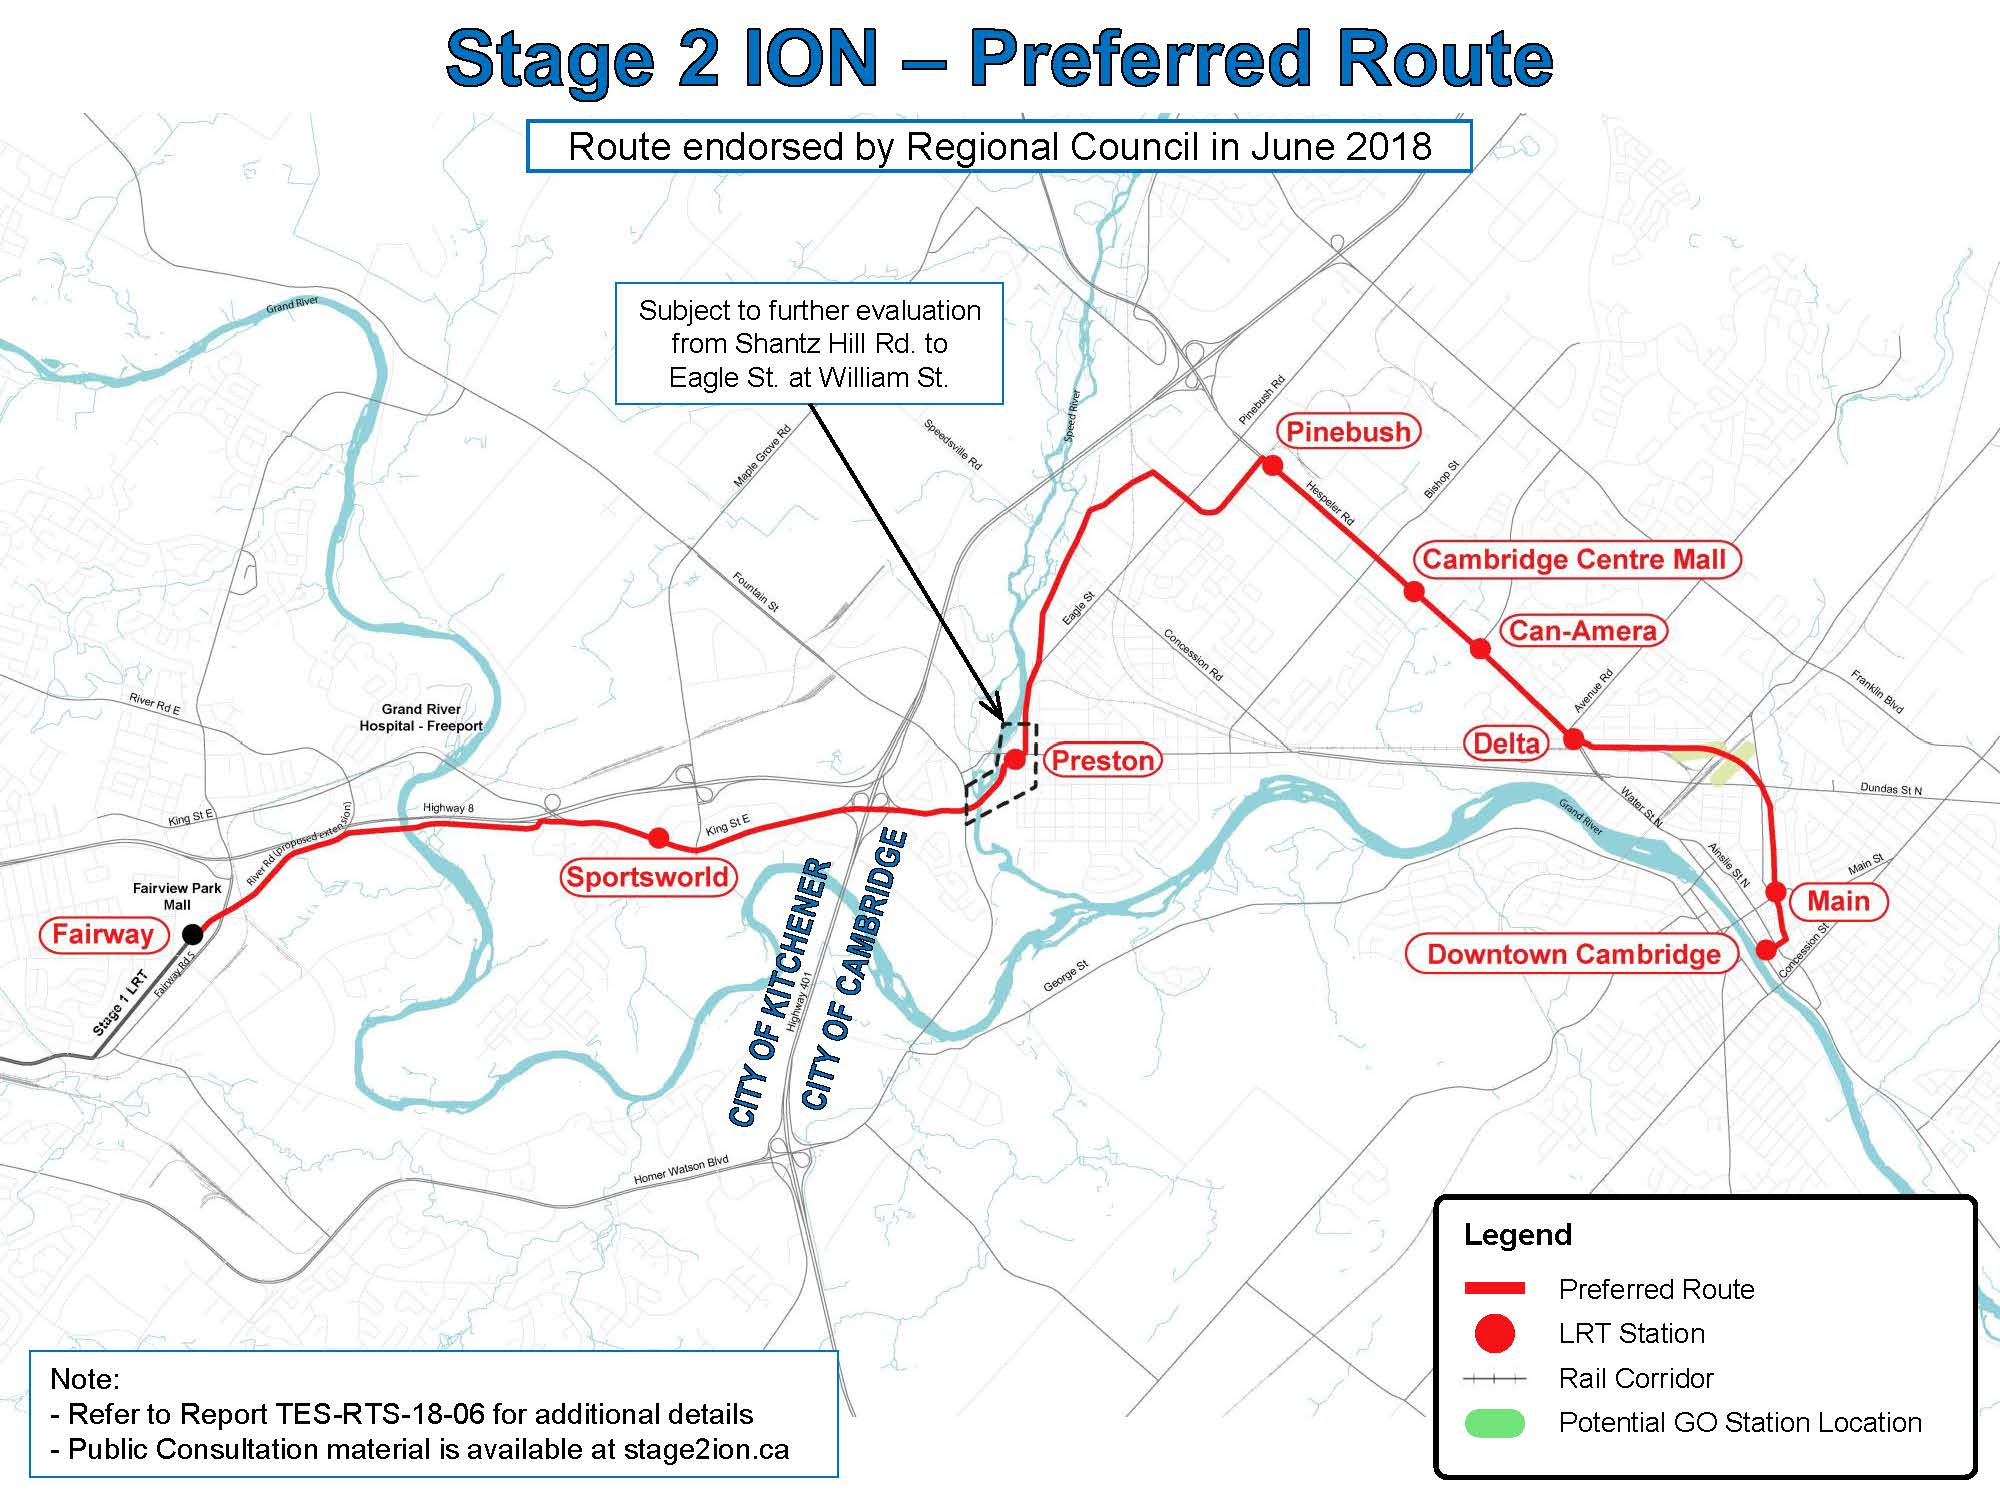 Map showing the Stage 2 ION route